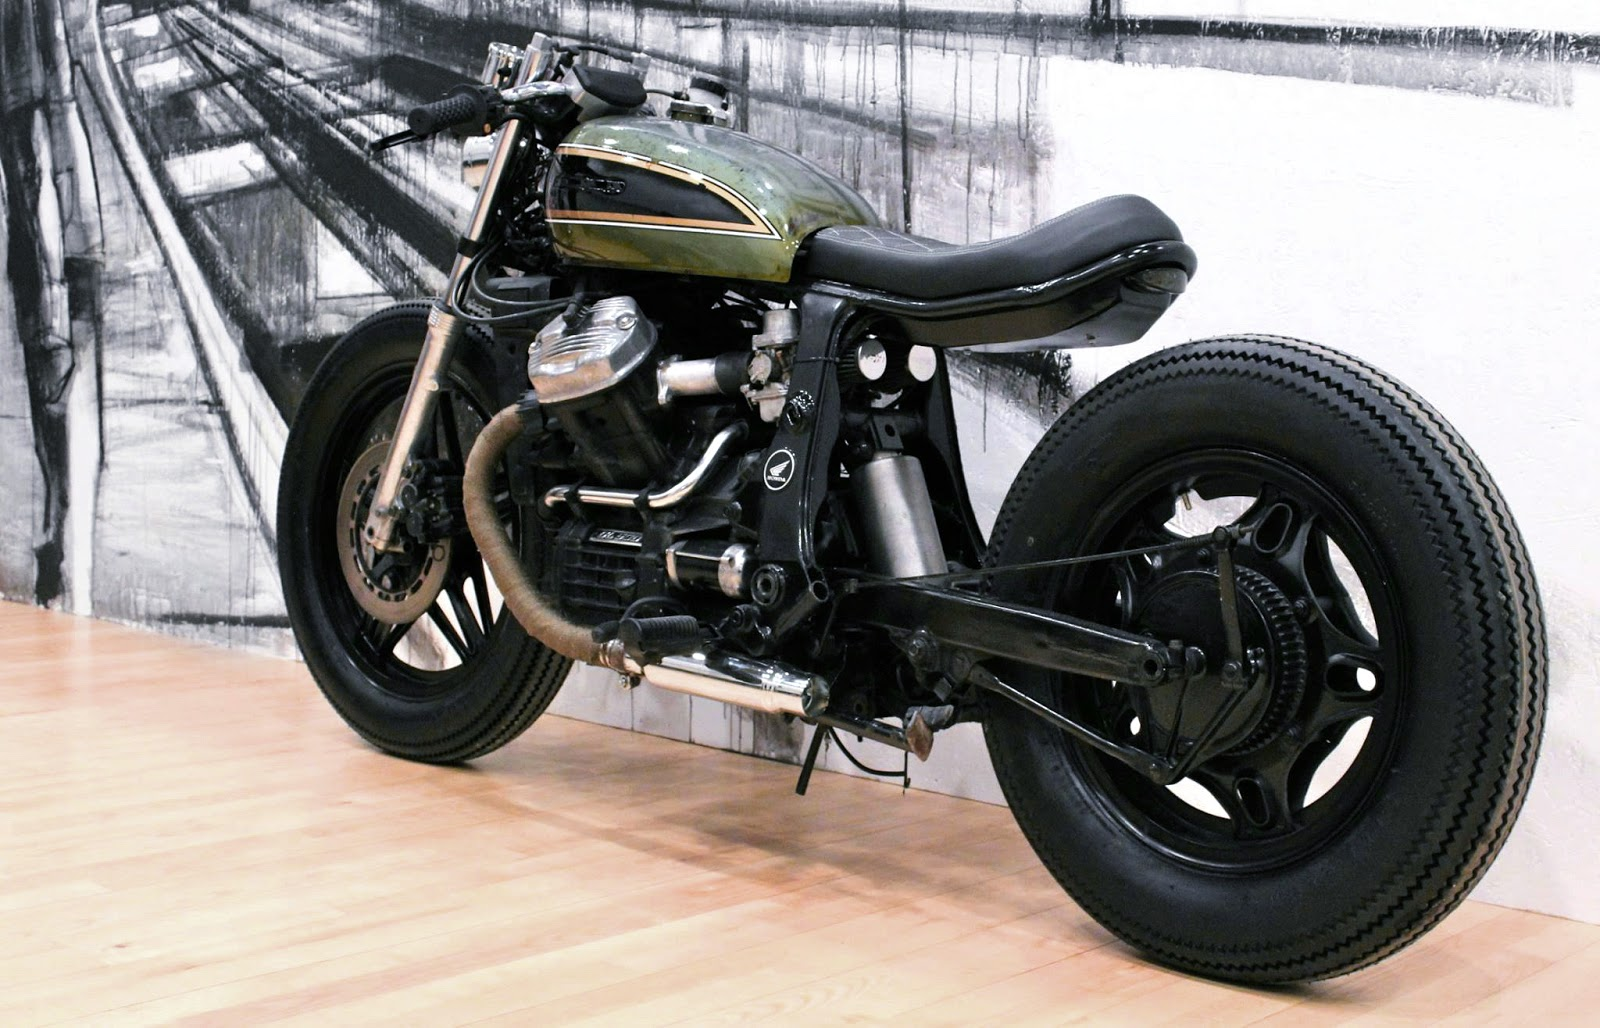 Cx500 By Relic Motorcycles Inazuma Caf 233 Racer